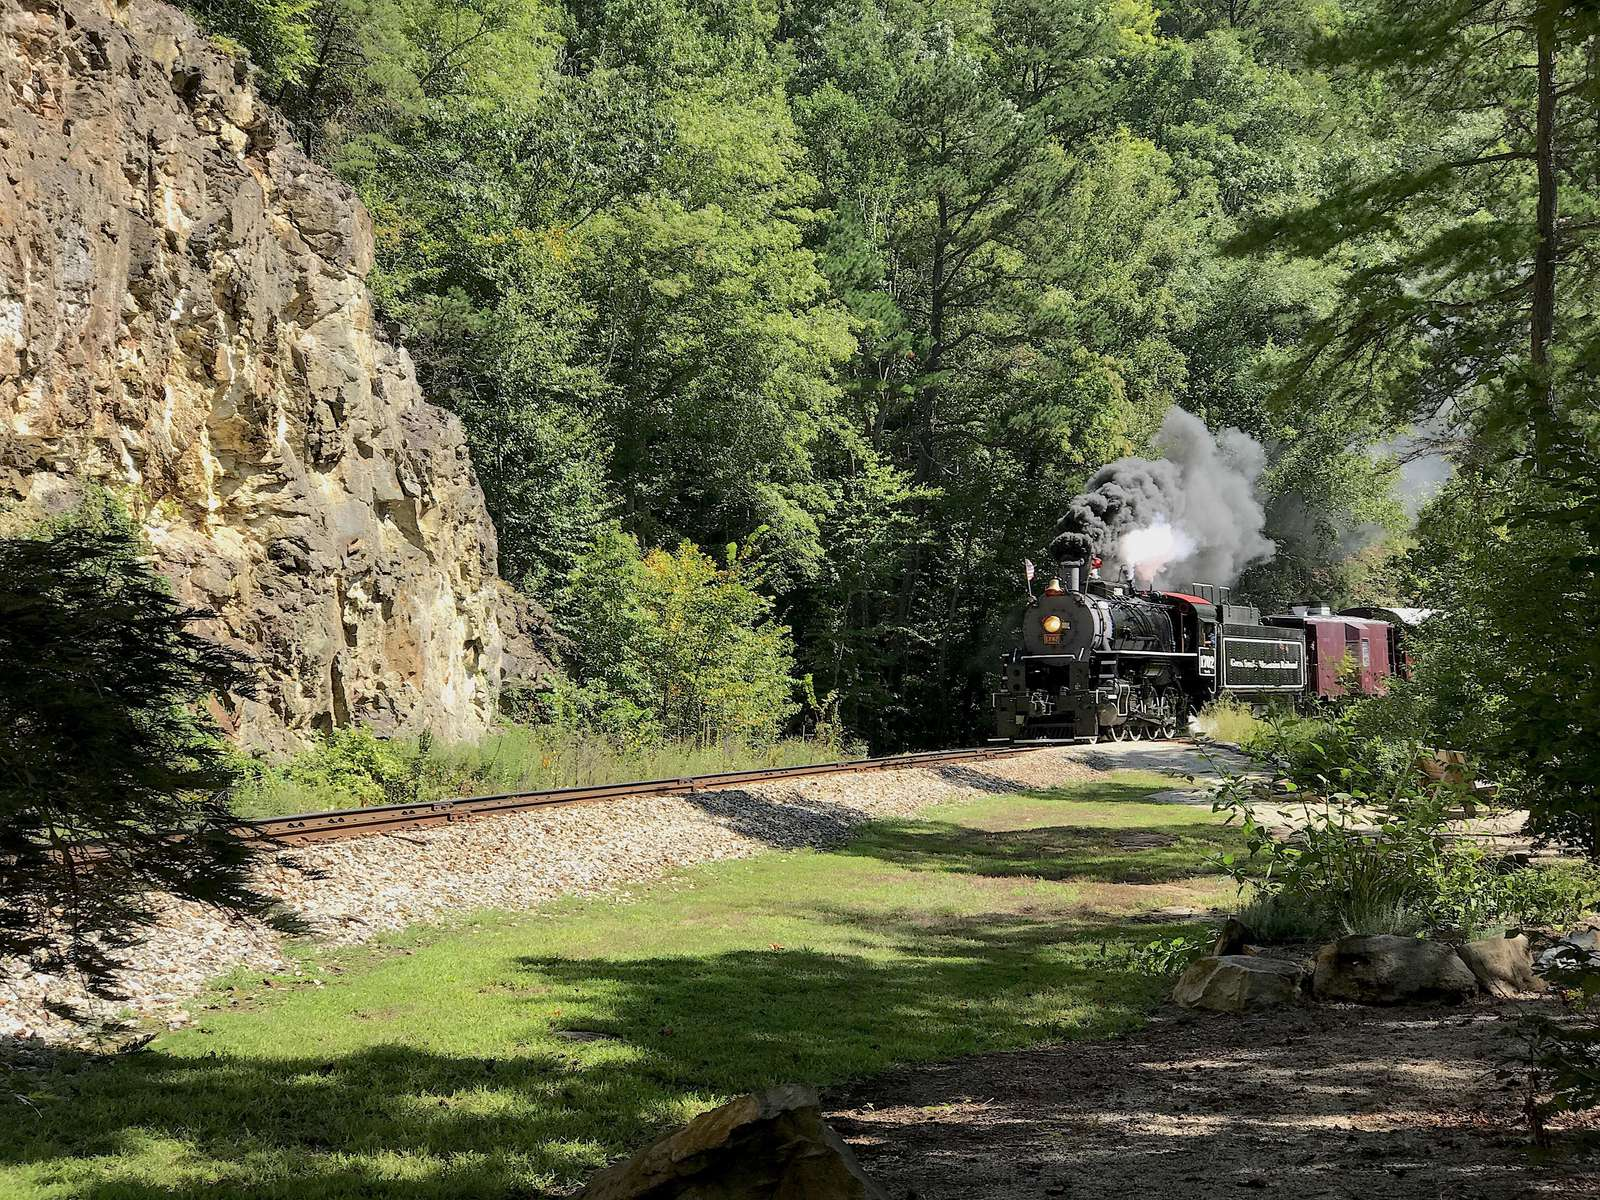 The Scenic Train from Bryson City passes above the Lake Front Docks on the way to the N.O.C.